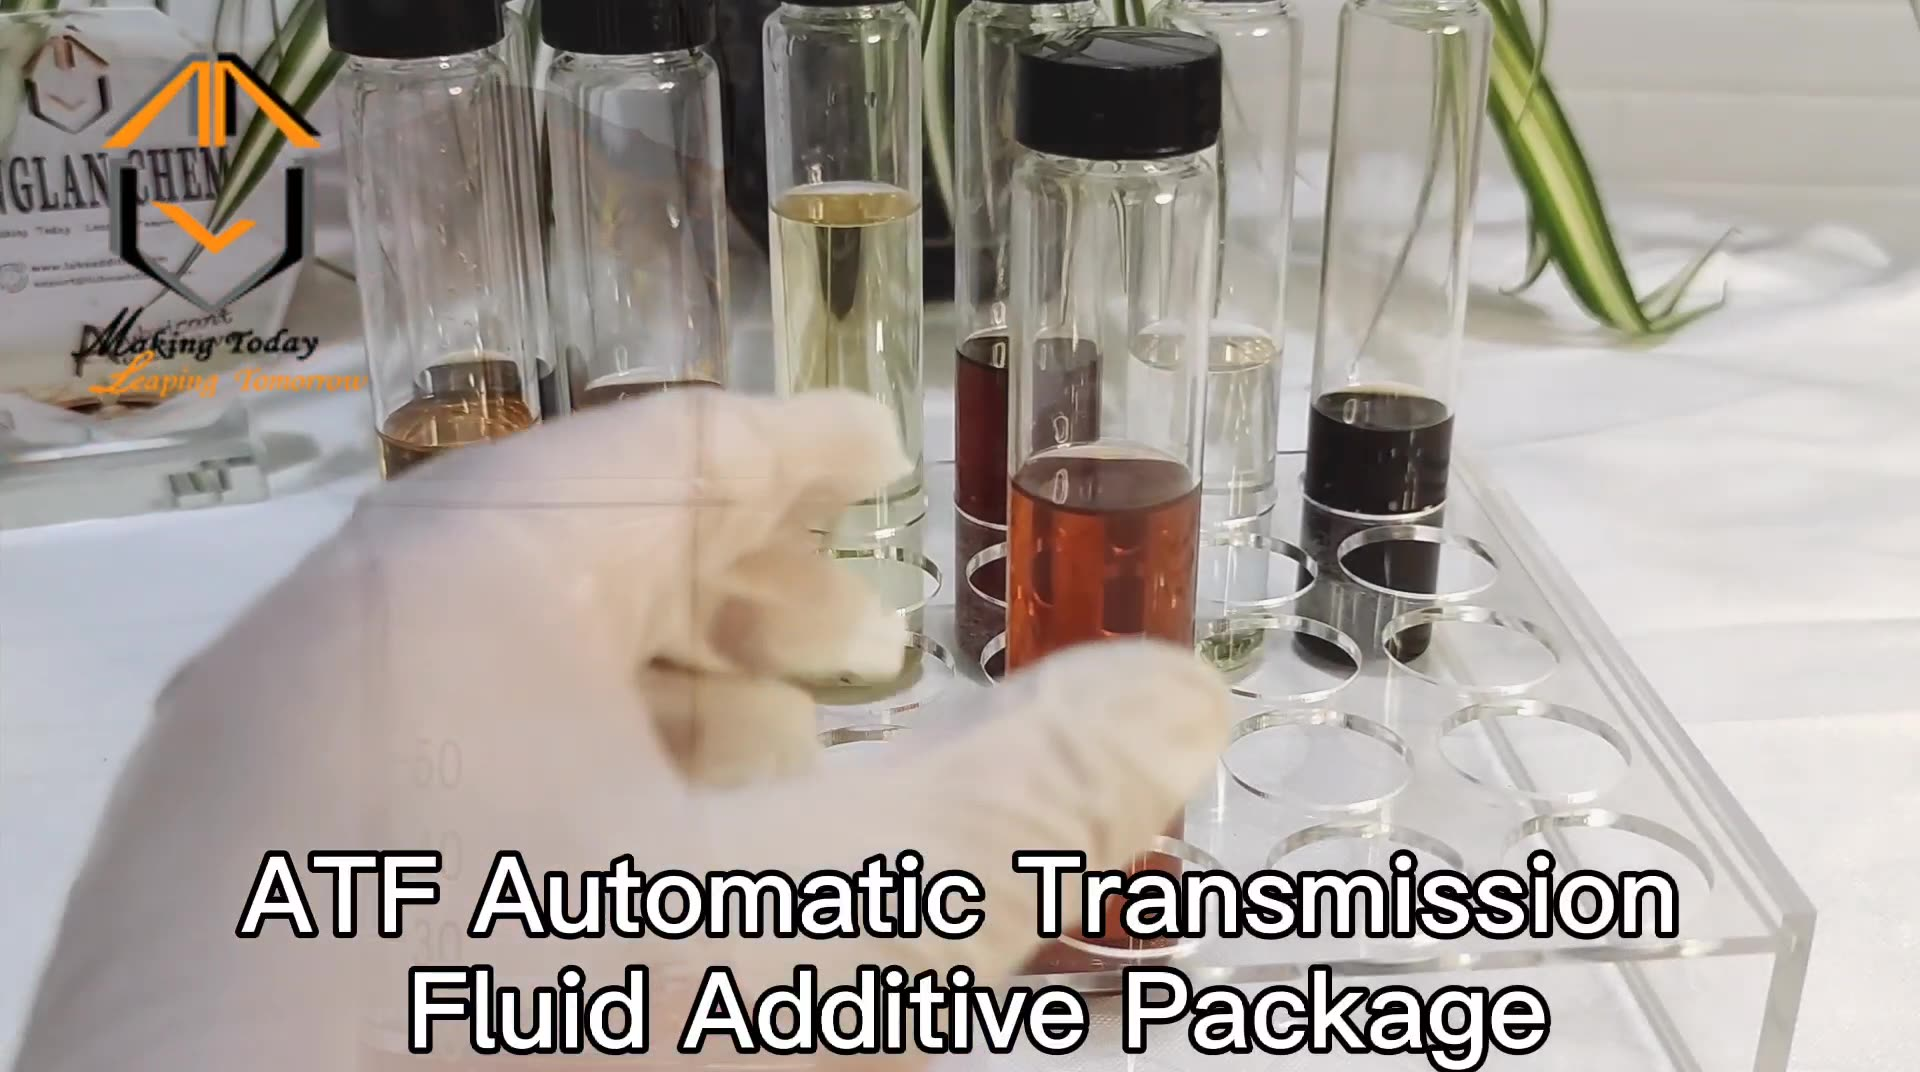 ATF Brown red  Automatic Transmission Fluid Additive Package  gearbox oil additives